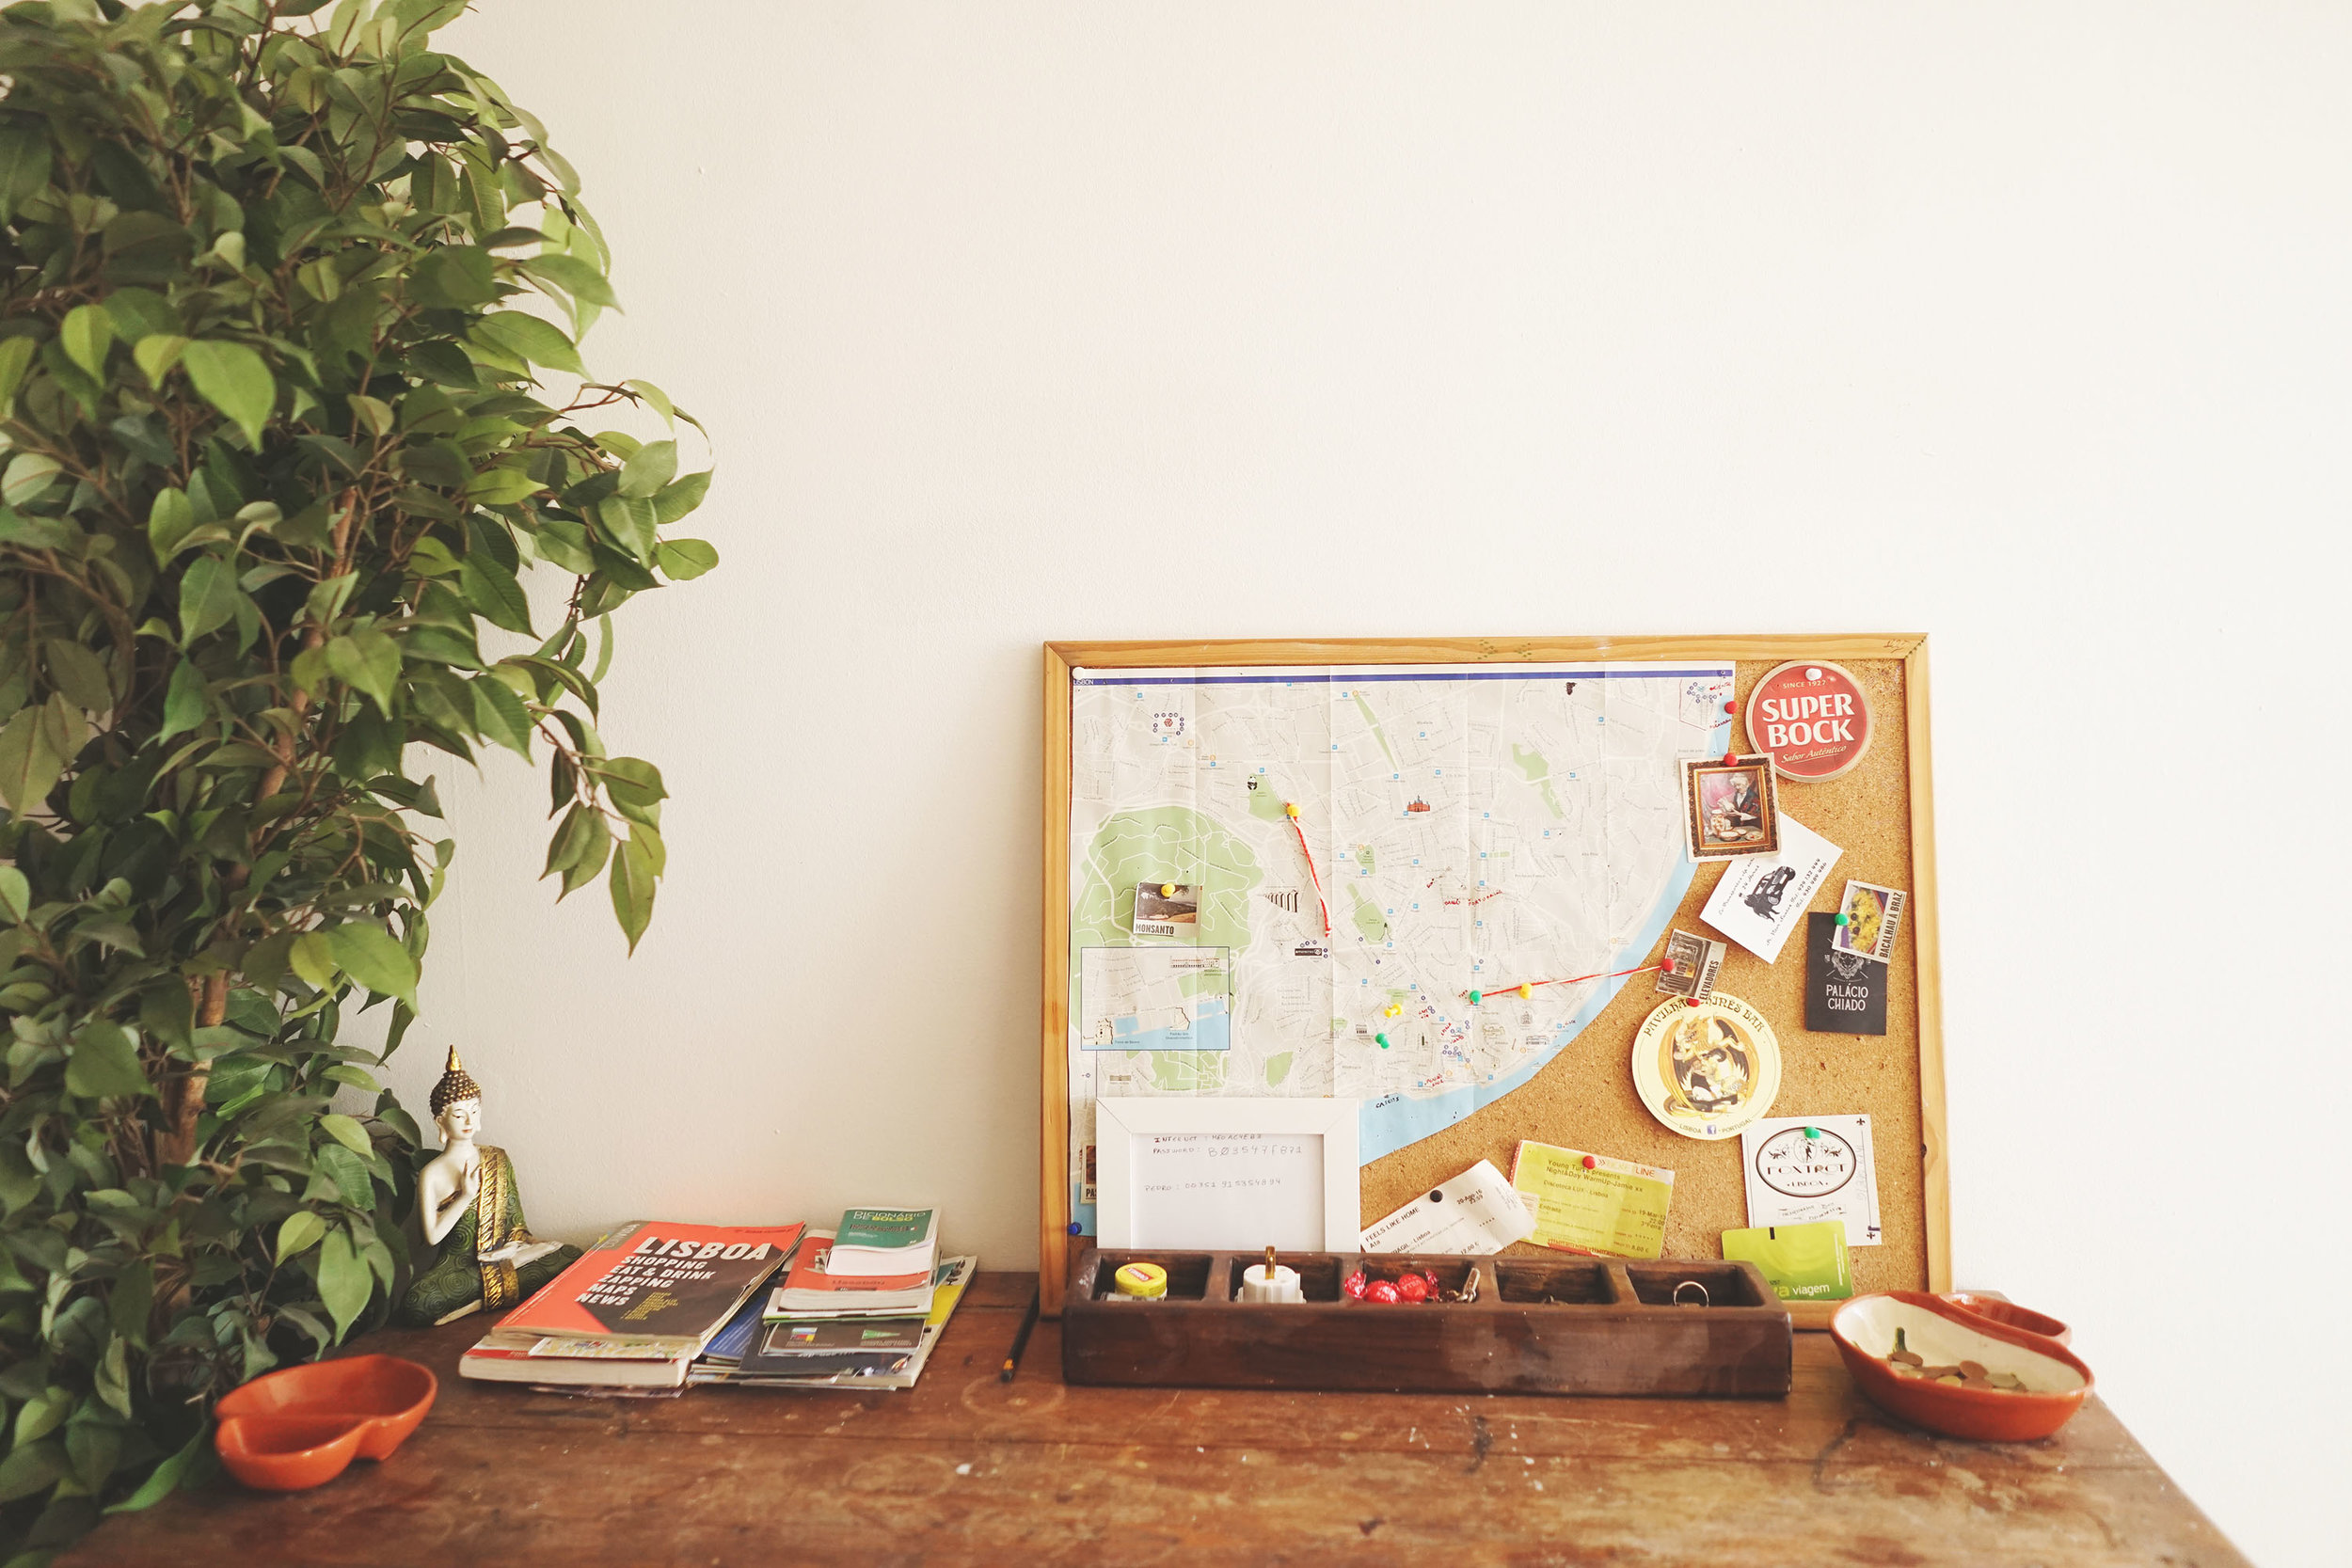 Helpful guidebooks and a map with our host, Pedro's, recommendations. Note the pinned concert ticket for only €8.